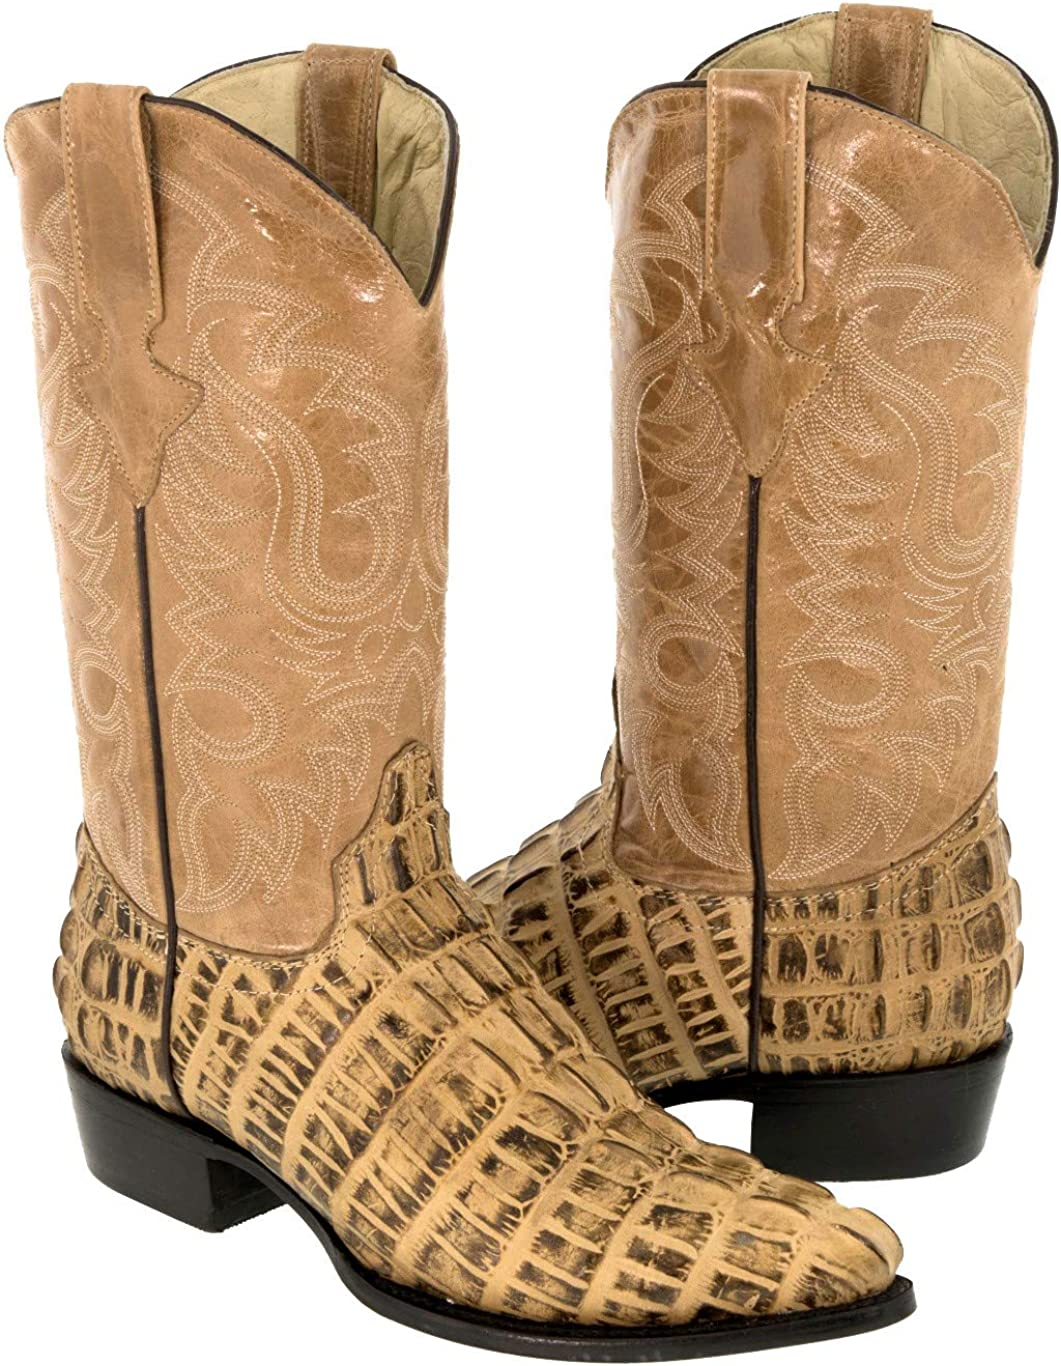 Mens Rustic Sand Western Cowboy Tail Leath Crocodile Louisville-Jefferson Super special price County Mall Print Boots